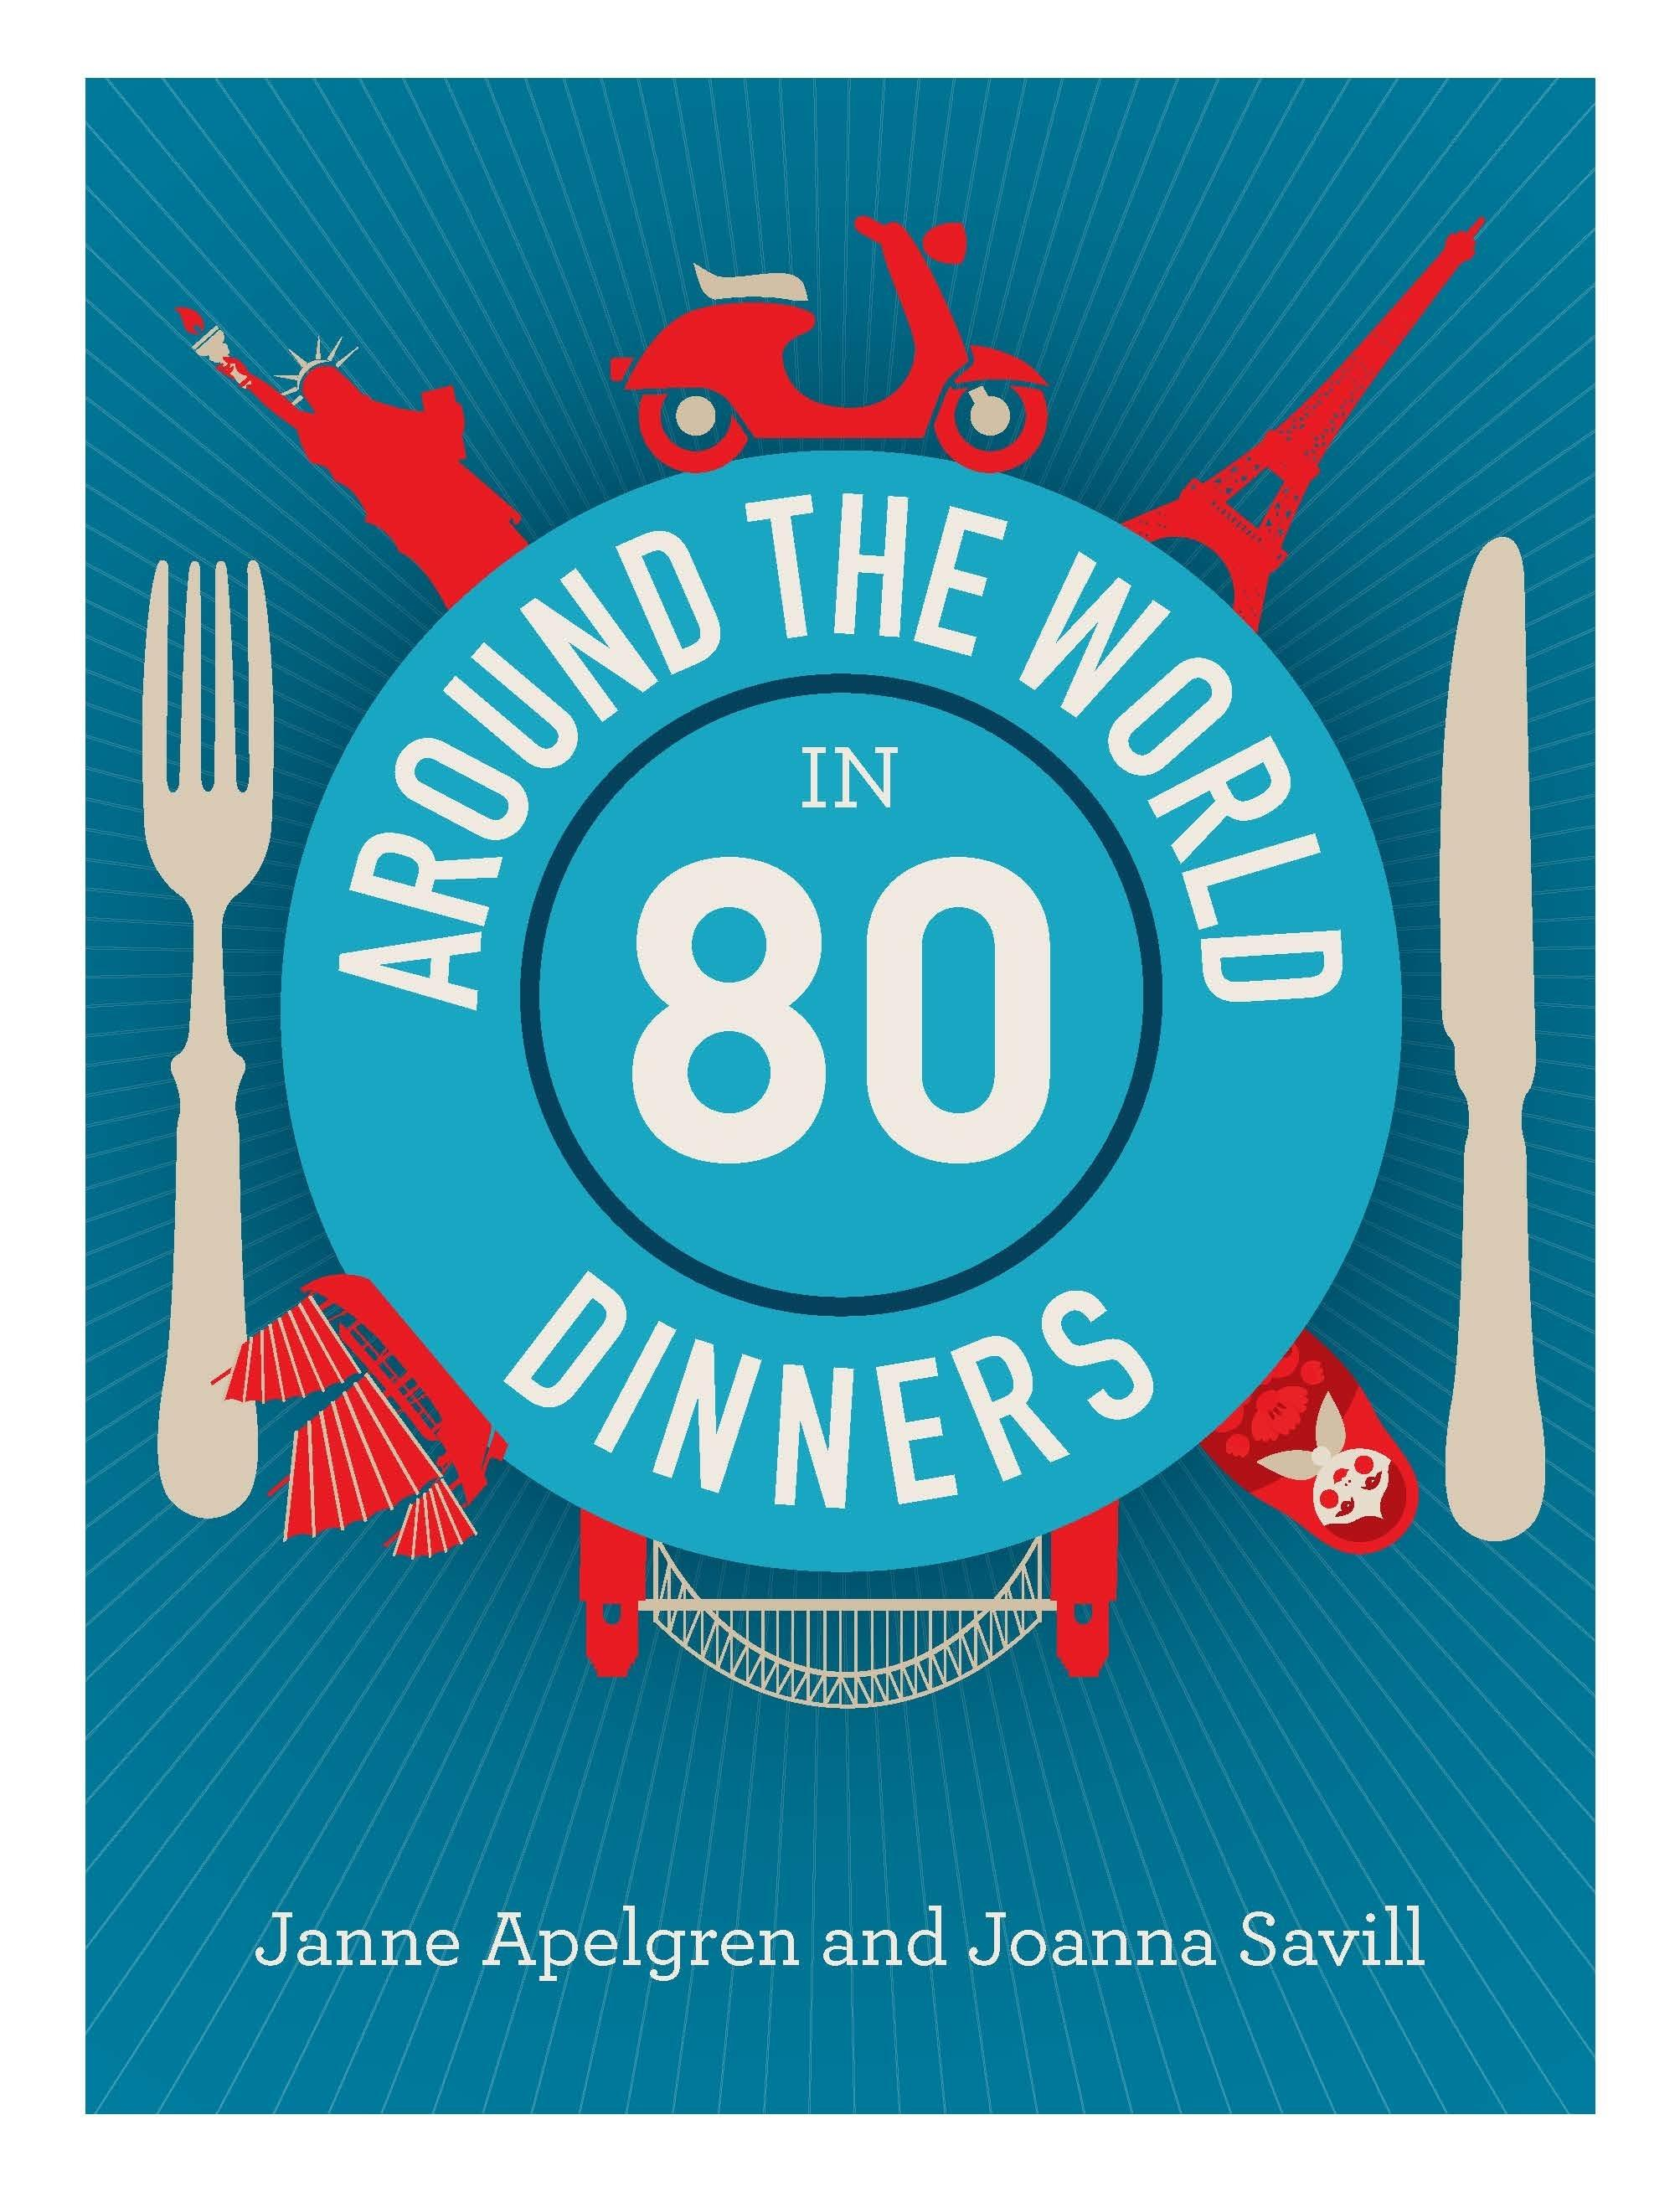 Around the world in80dinners